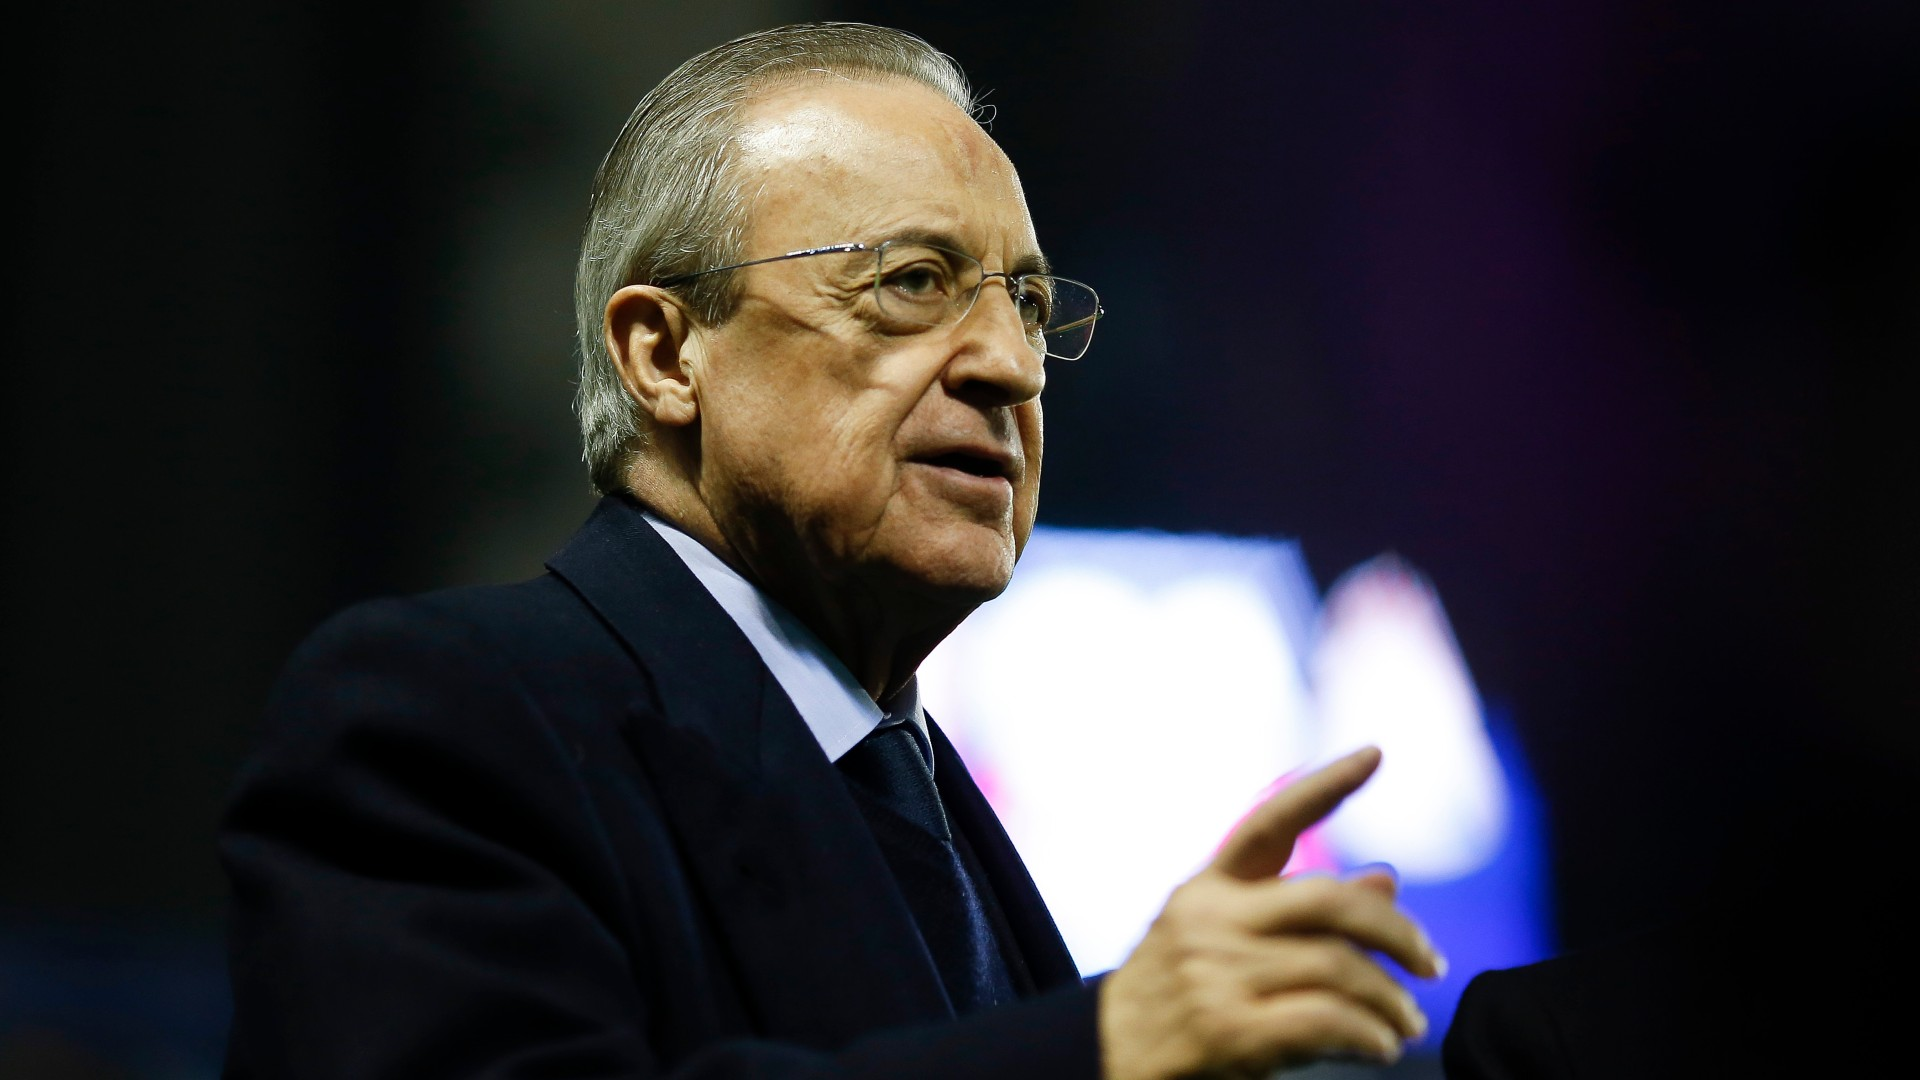 'Perez is the Pope, King and Cardinal at Real Madrid' – Cassano says Blancos president has complete control